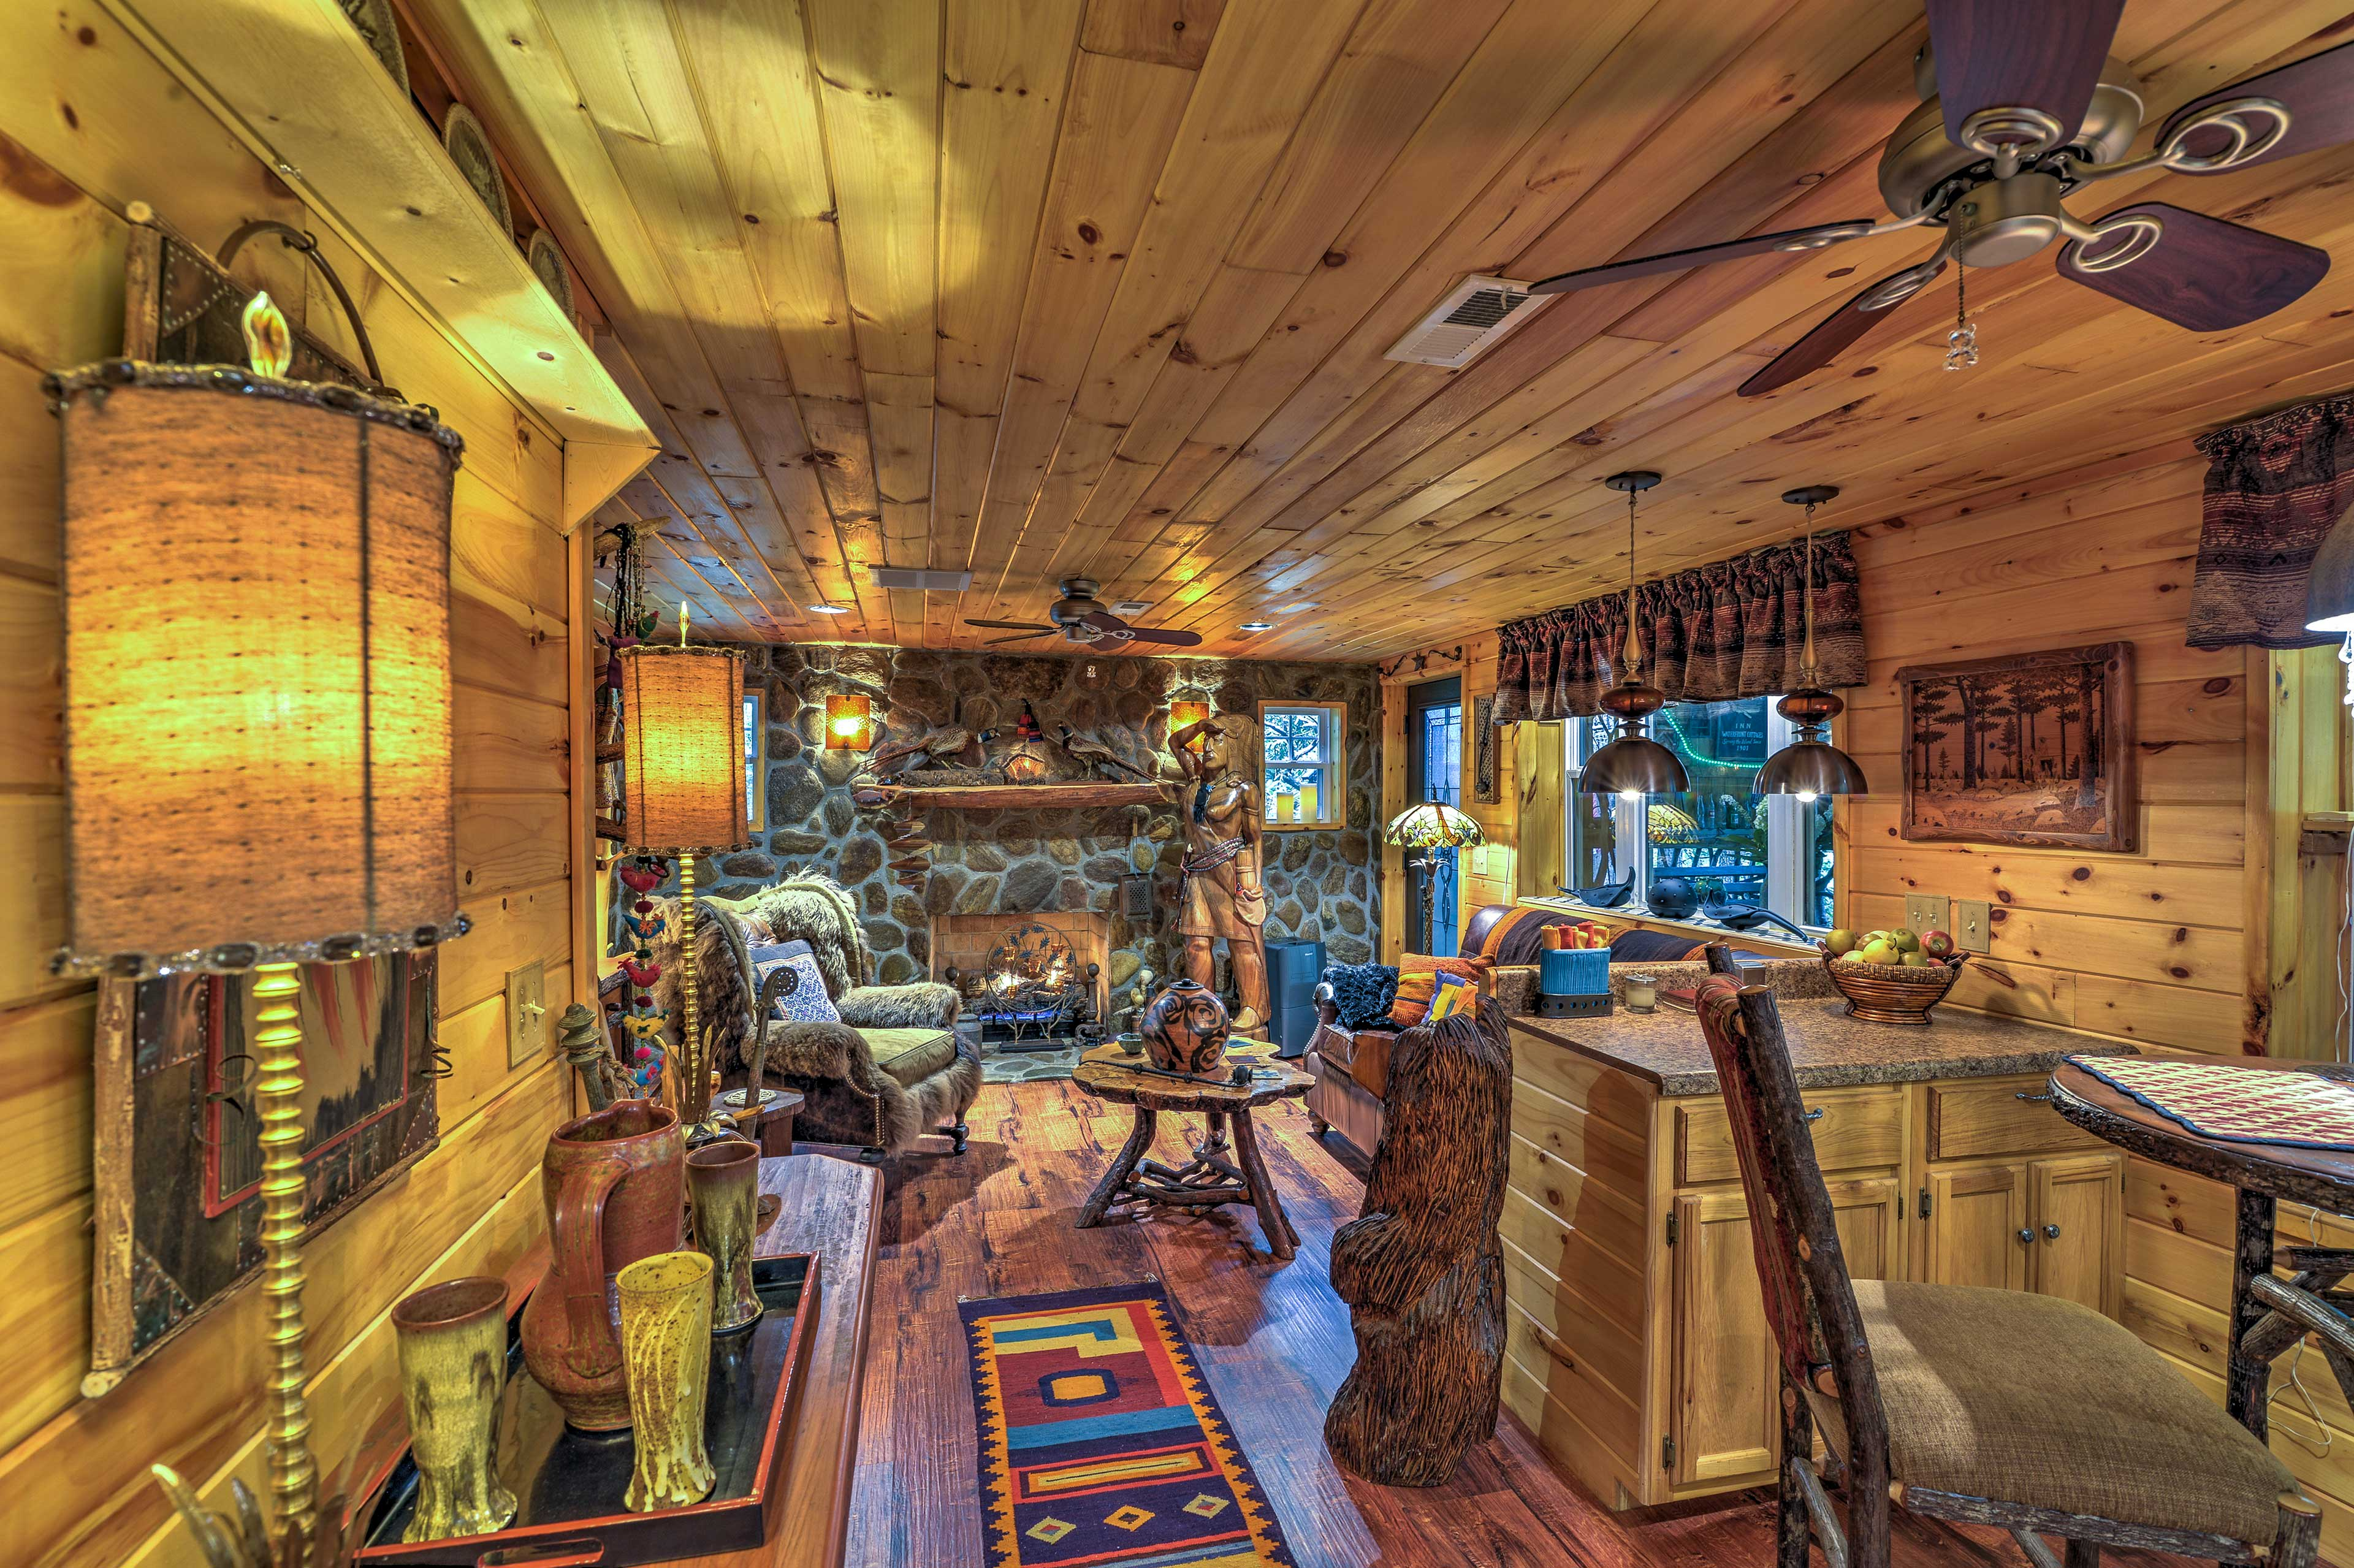 Escape to a secluded vacation rental cabin in the lush Pisgah National Forest.